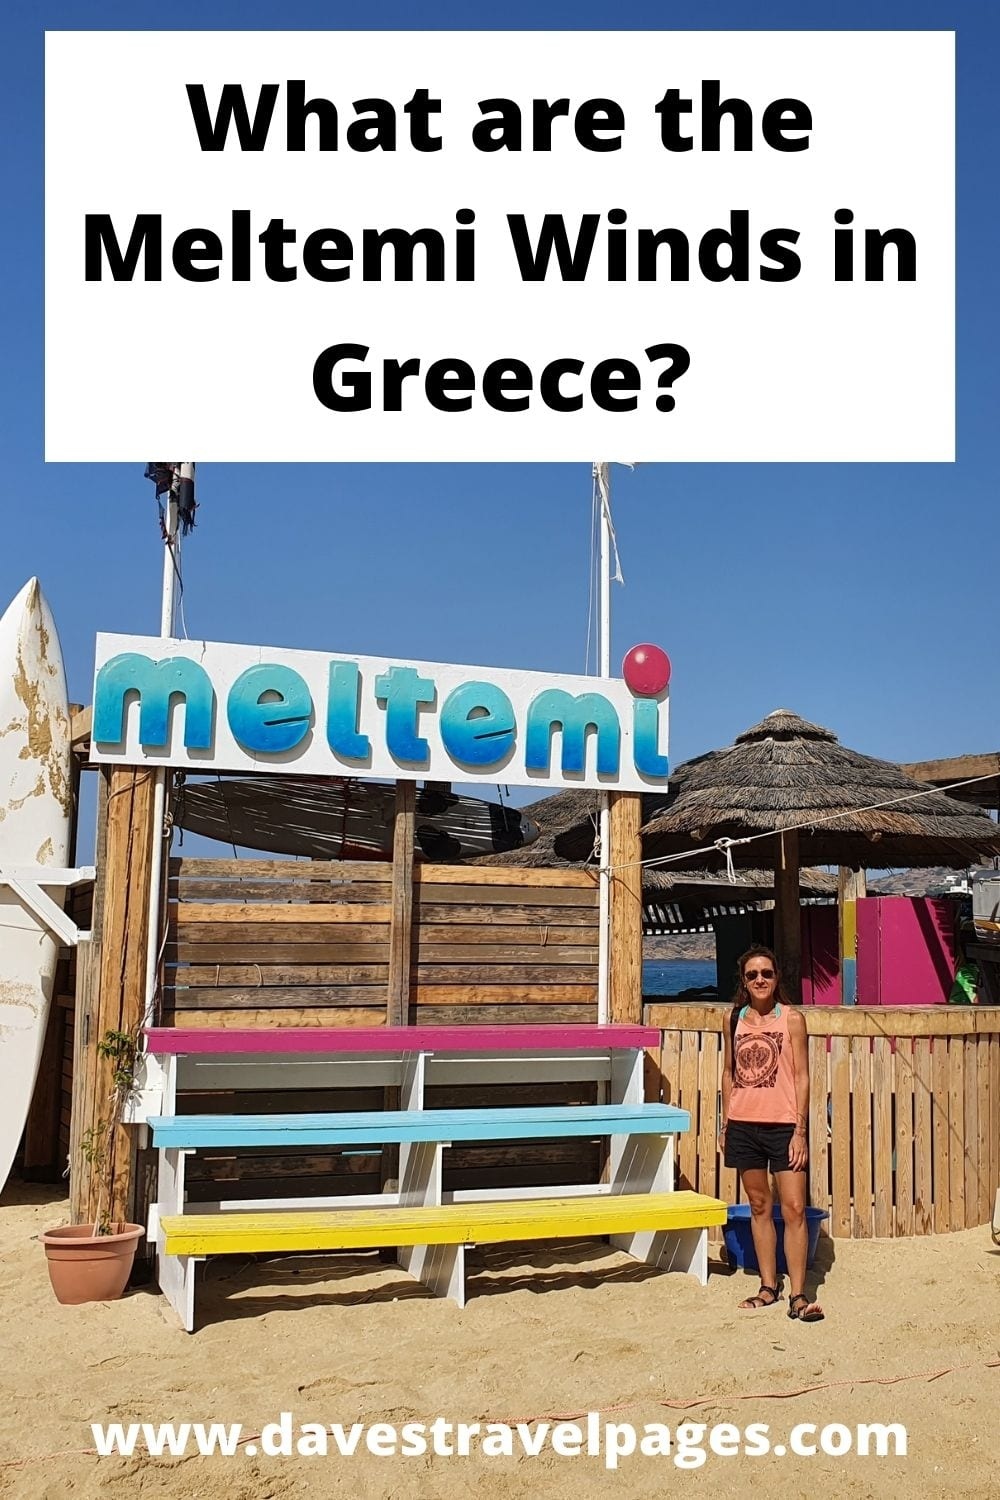 The Meltemi Winds in Greece - All you need to know